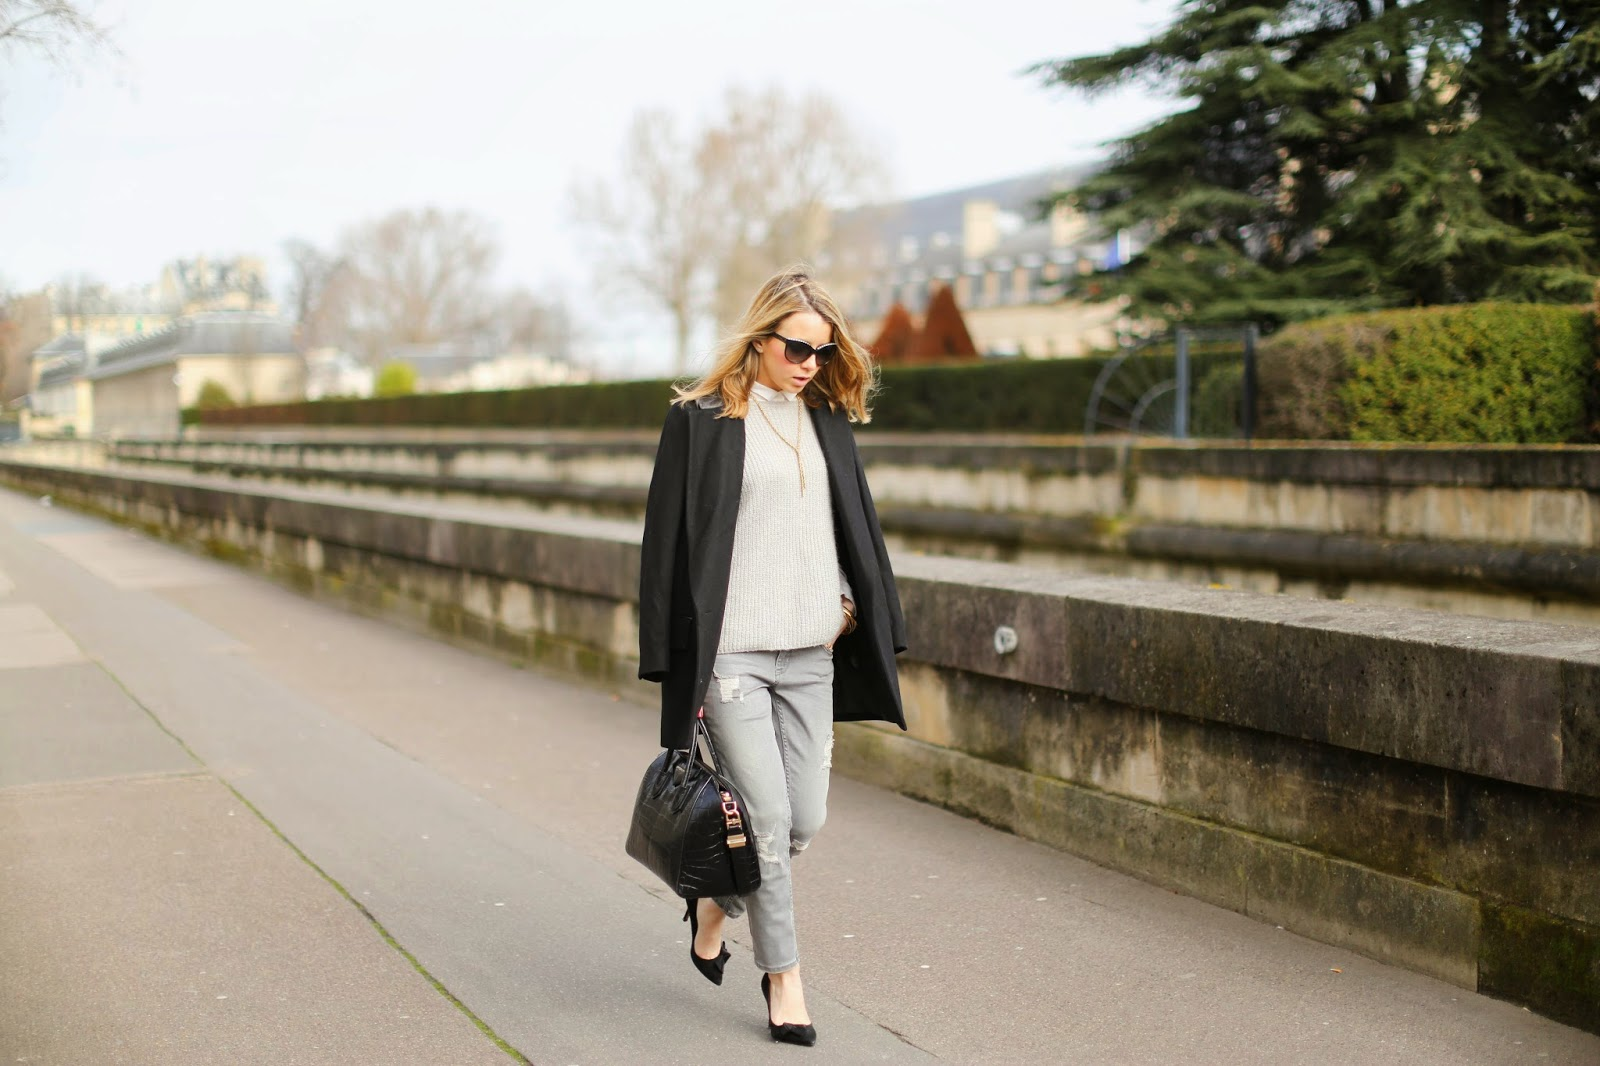 boyfriend jeans, mom jeans, zara, rag and bone, isabel marant, streetstyle, fashion blogger